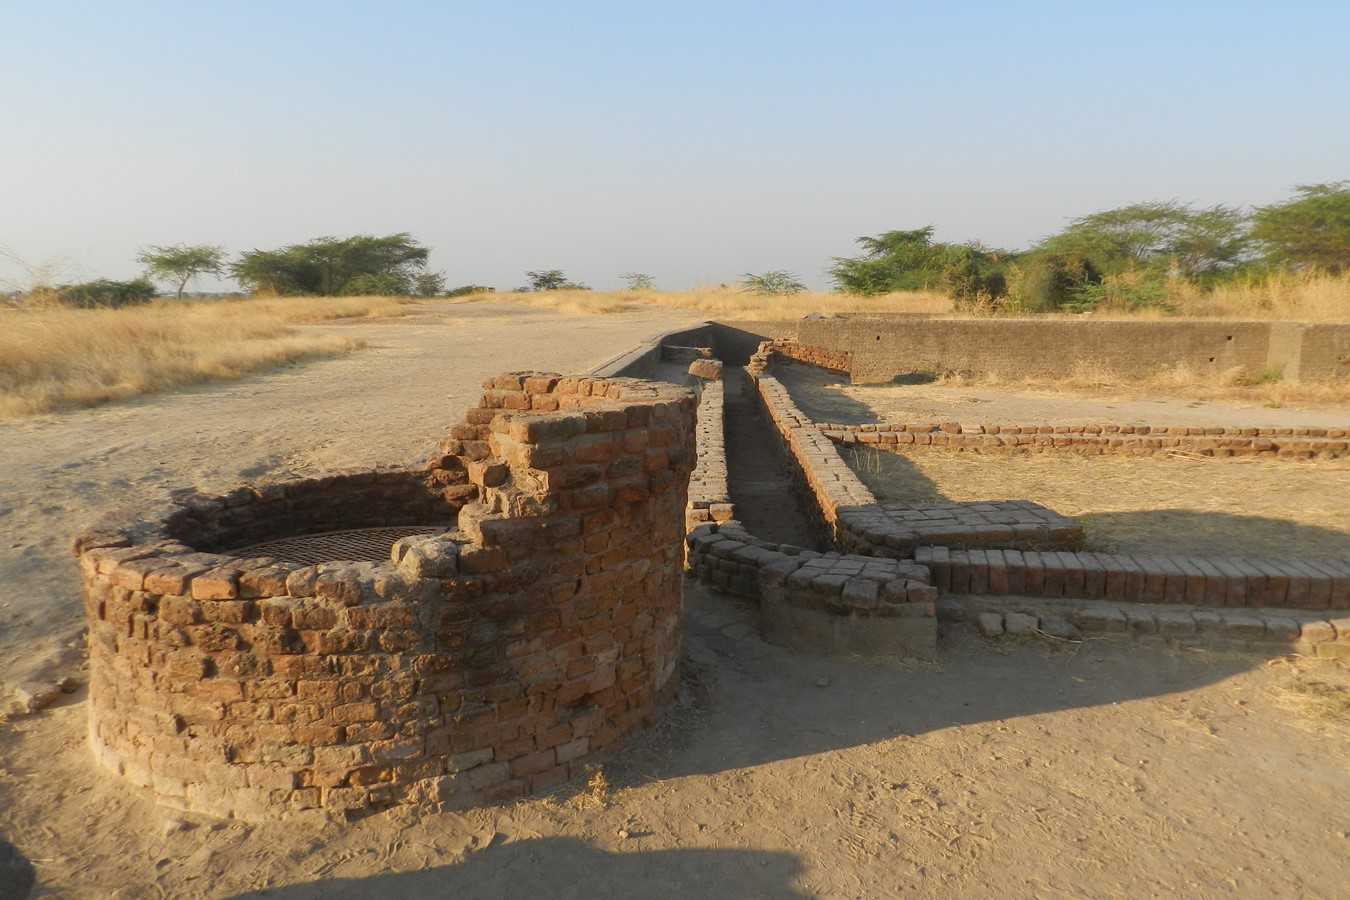 How water led to the evolution of architecture in ancient India - Sheet2